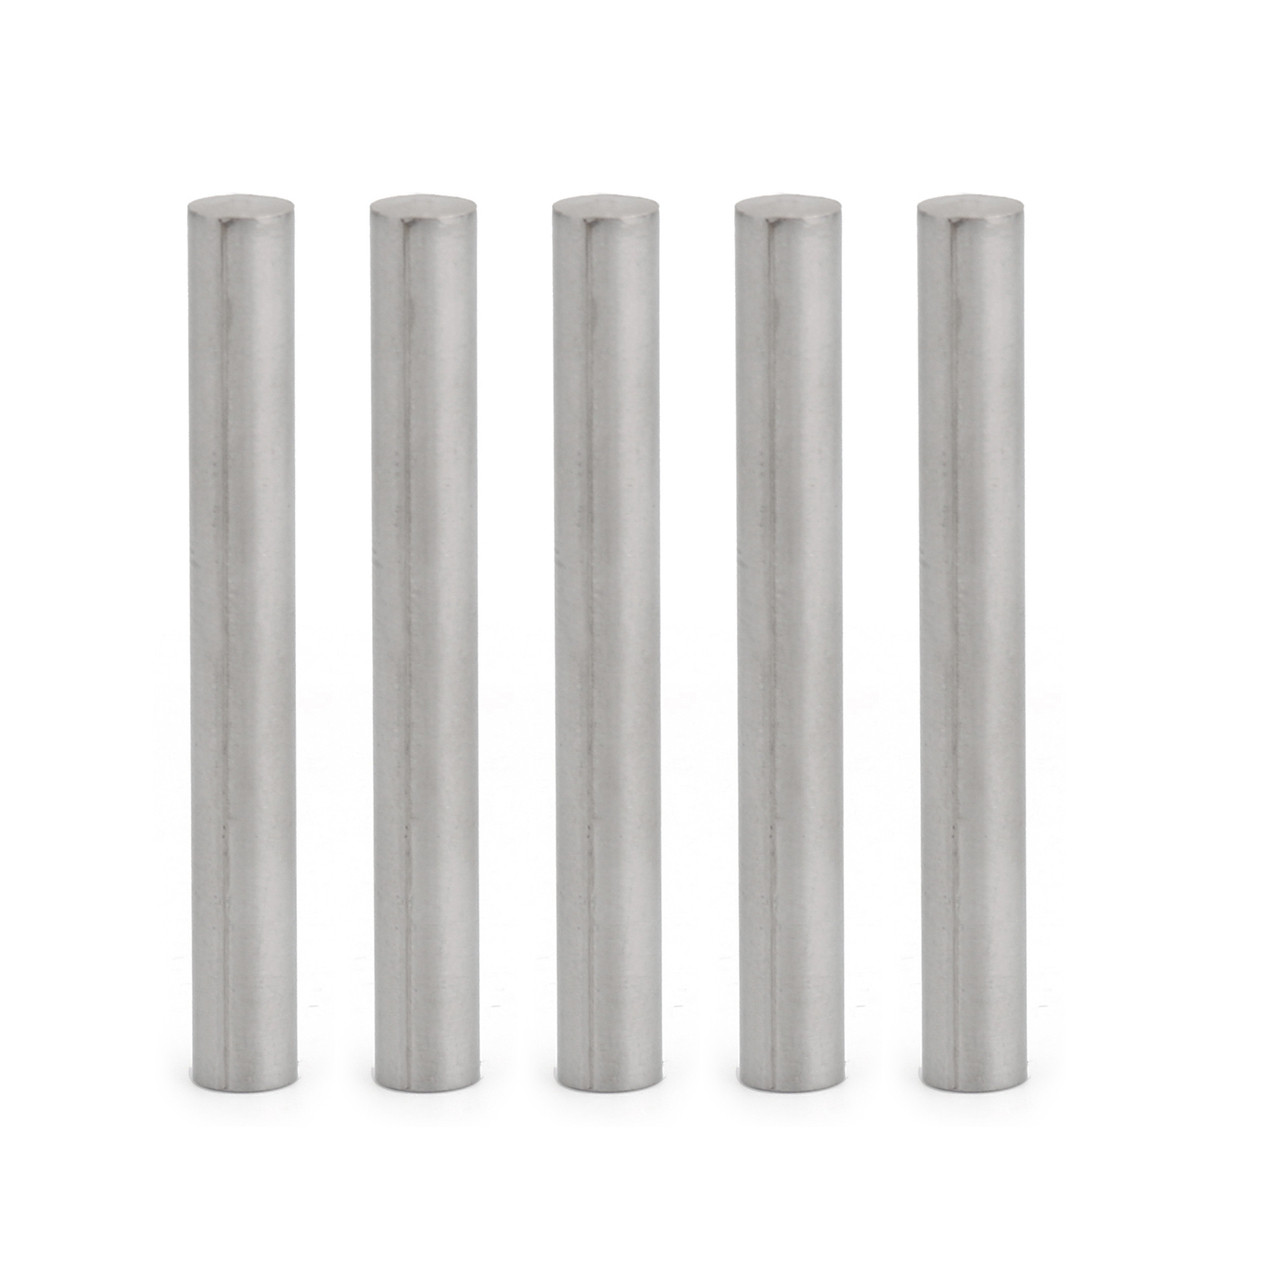 Mad Hornets 100x Stainless Steel Round Tube Case 6*50mm For PT100 DS18B20 Temperature Sensor